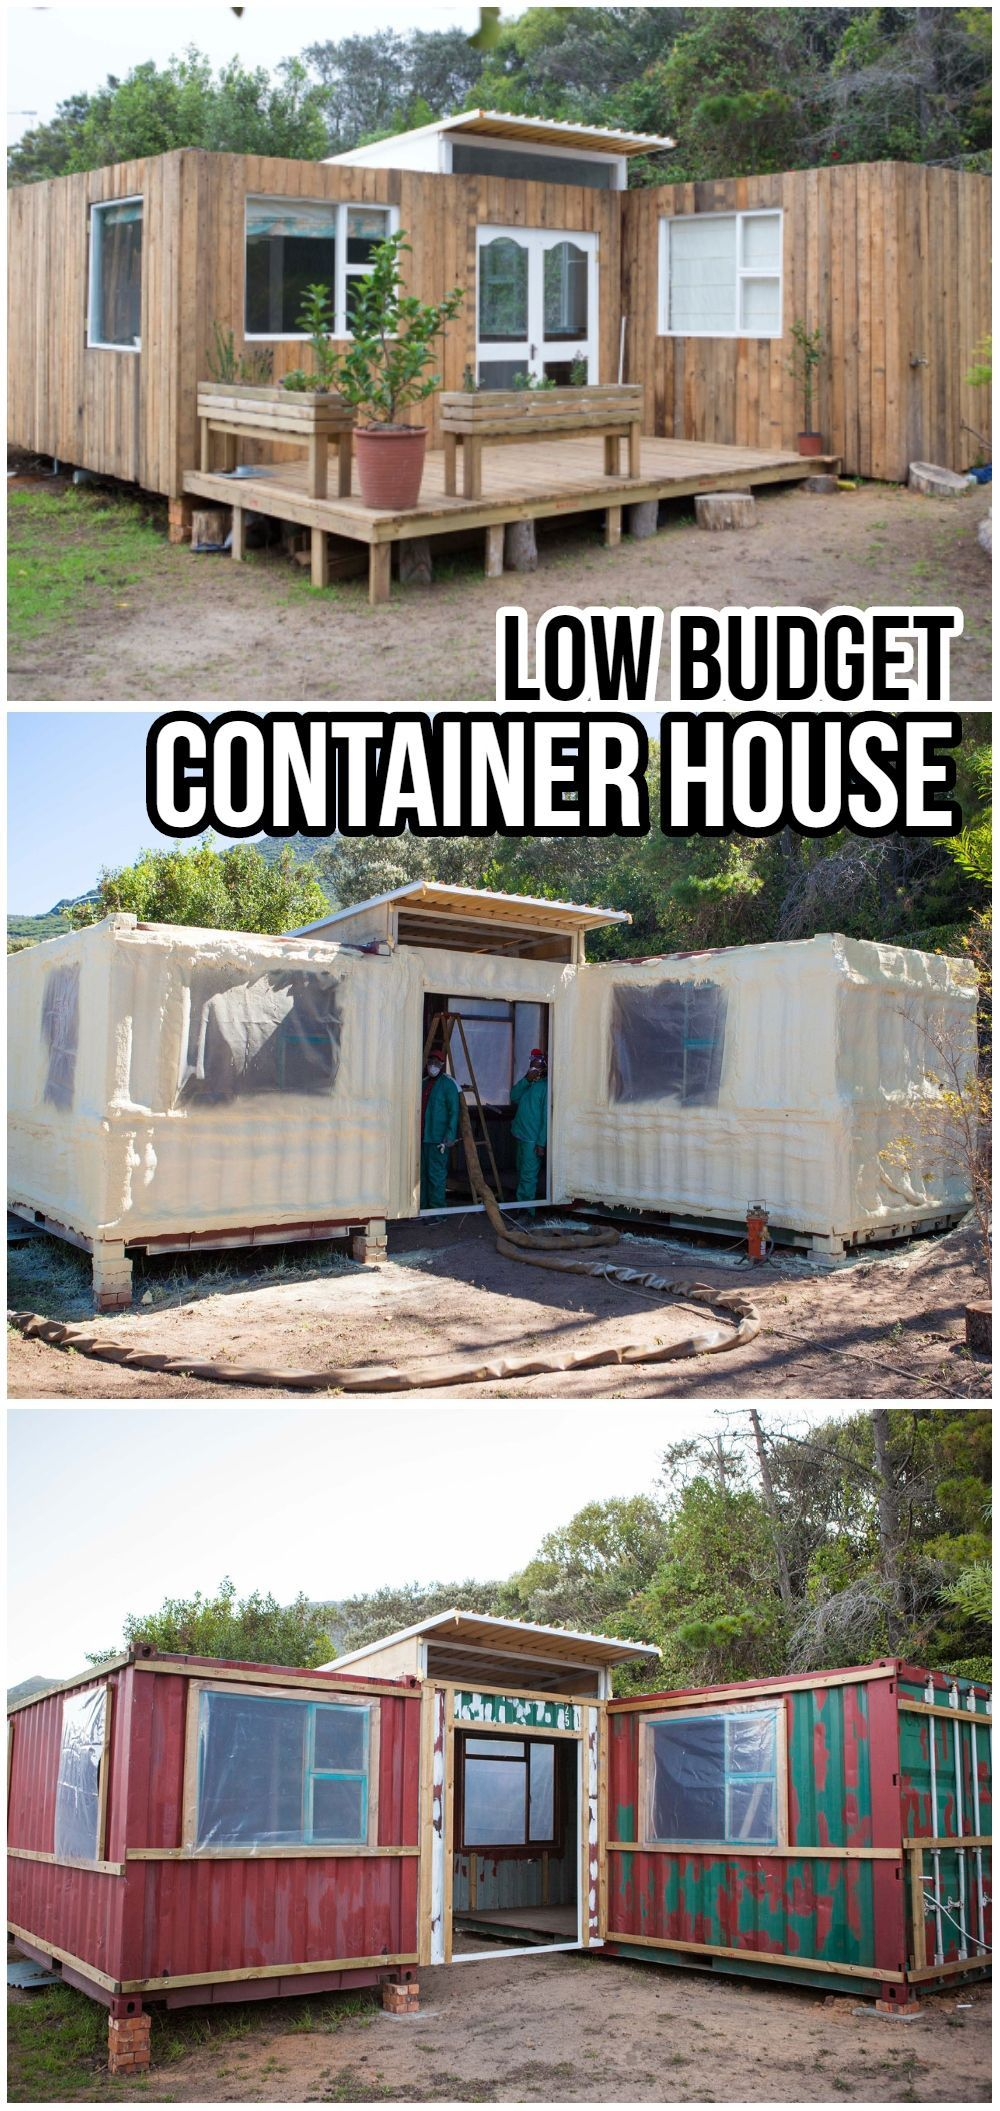 Low Budget Container House from South Africa - Living in a Container